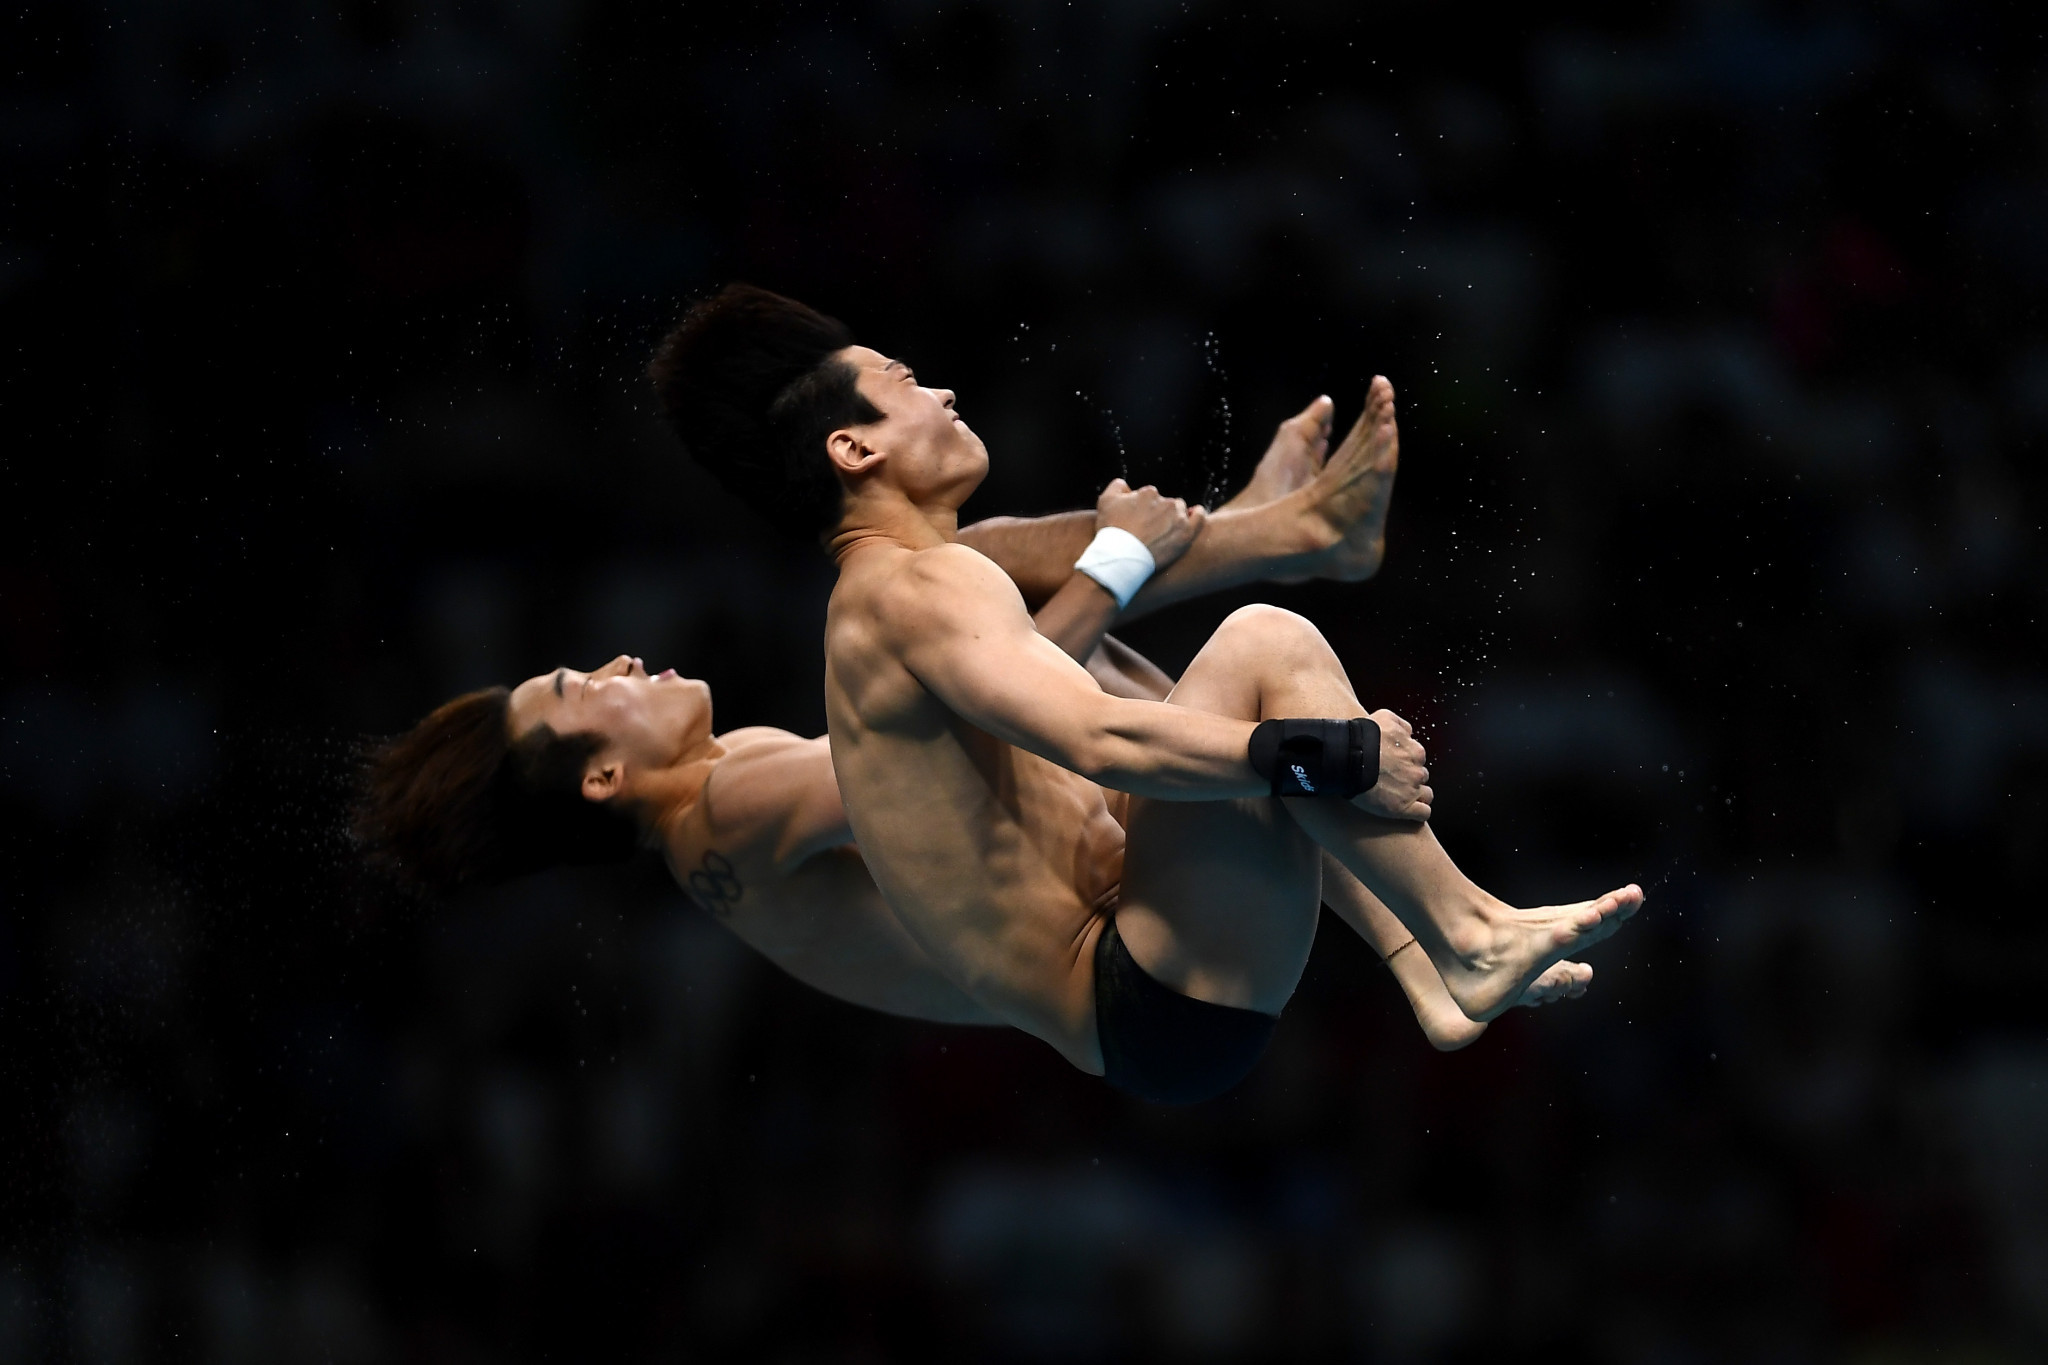 South Korea pair clinch double gold at FINA Diving Grand Prix in Kuala Lumpur